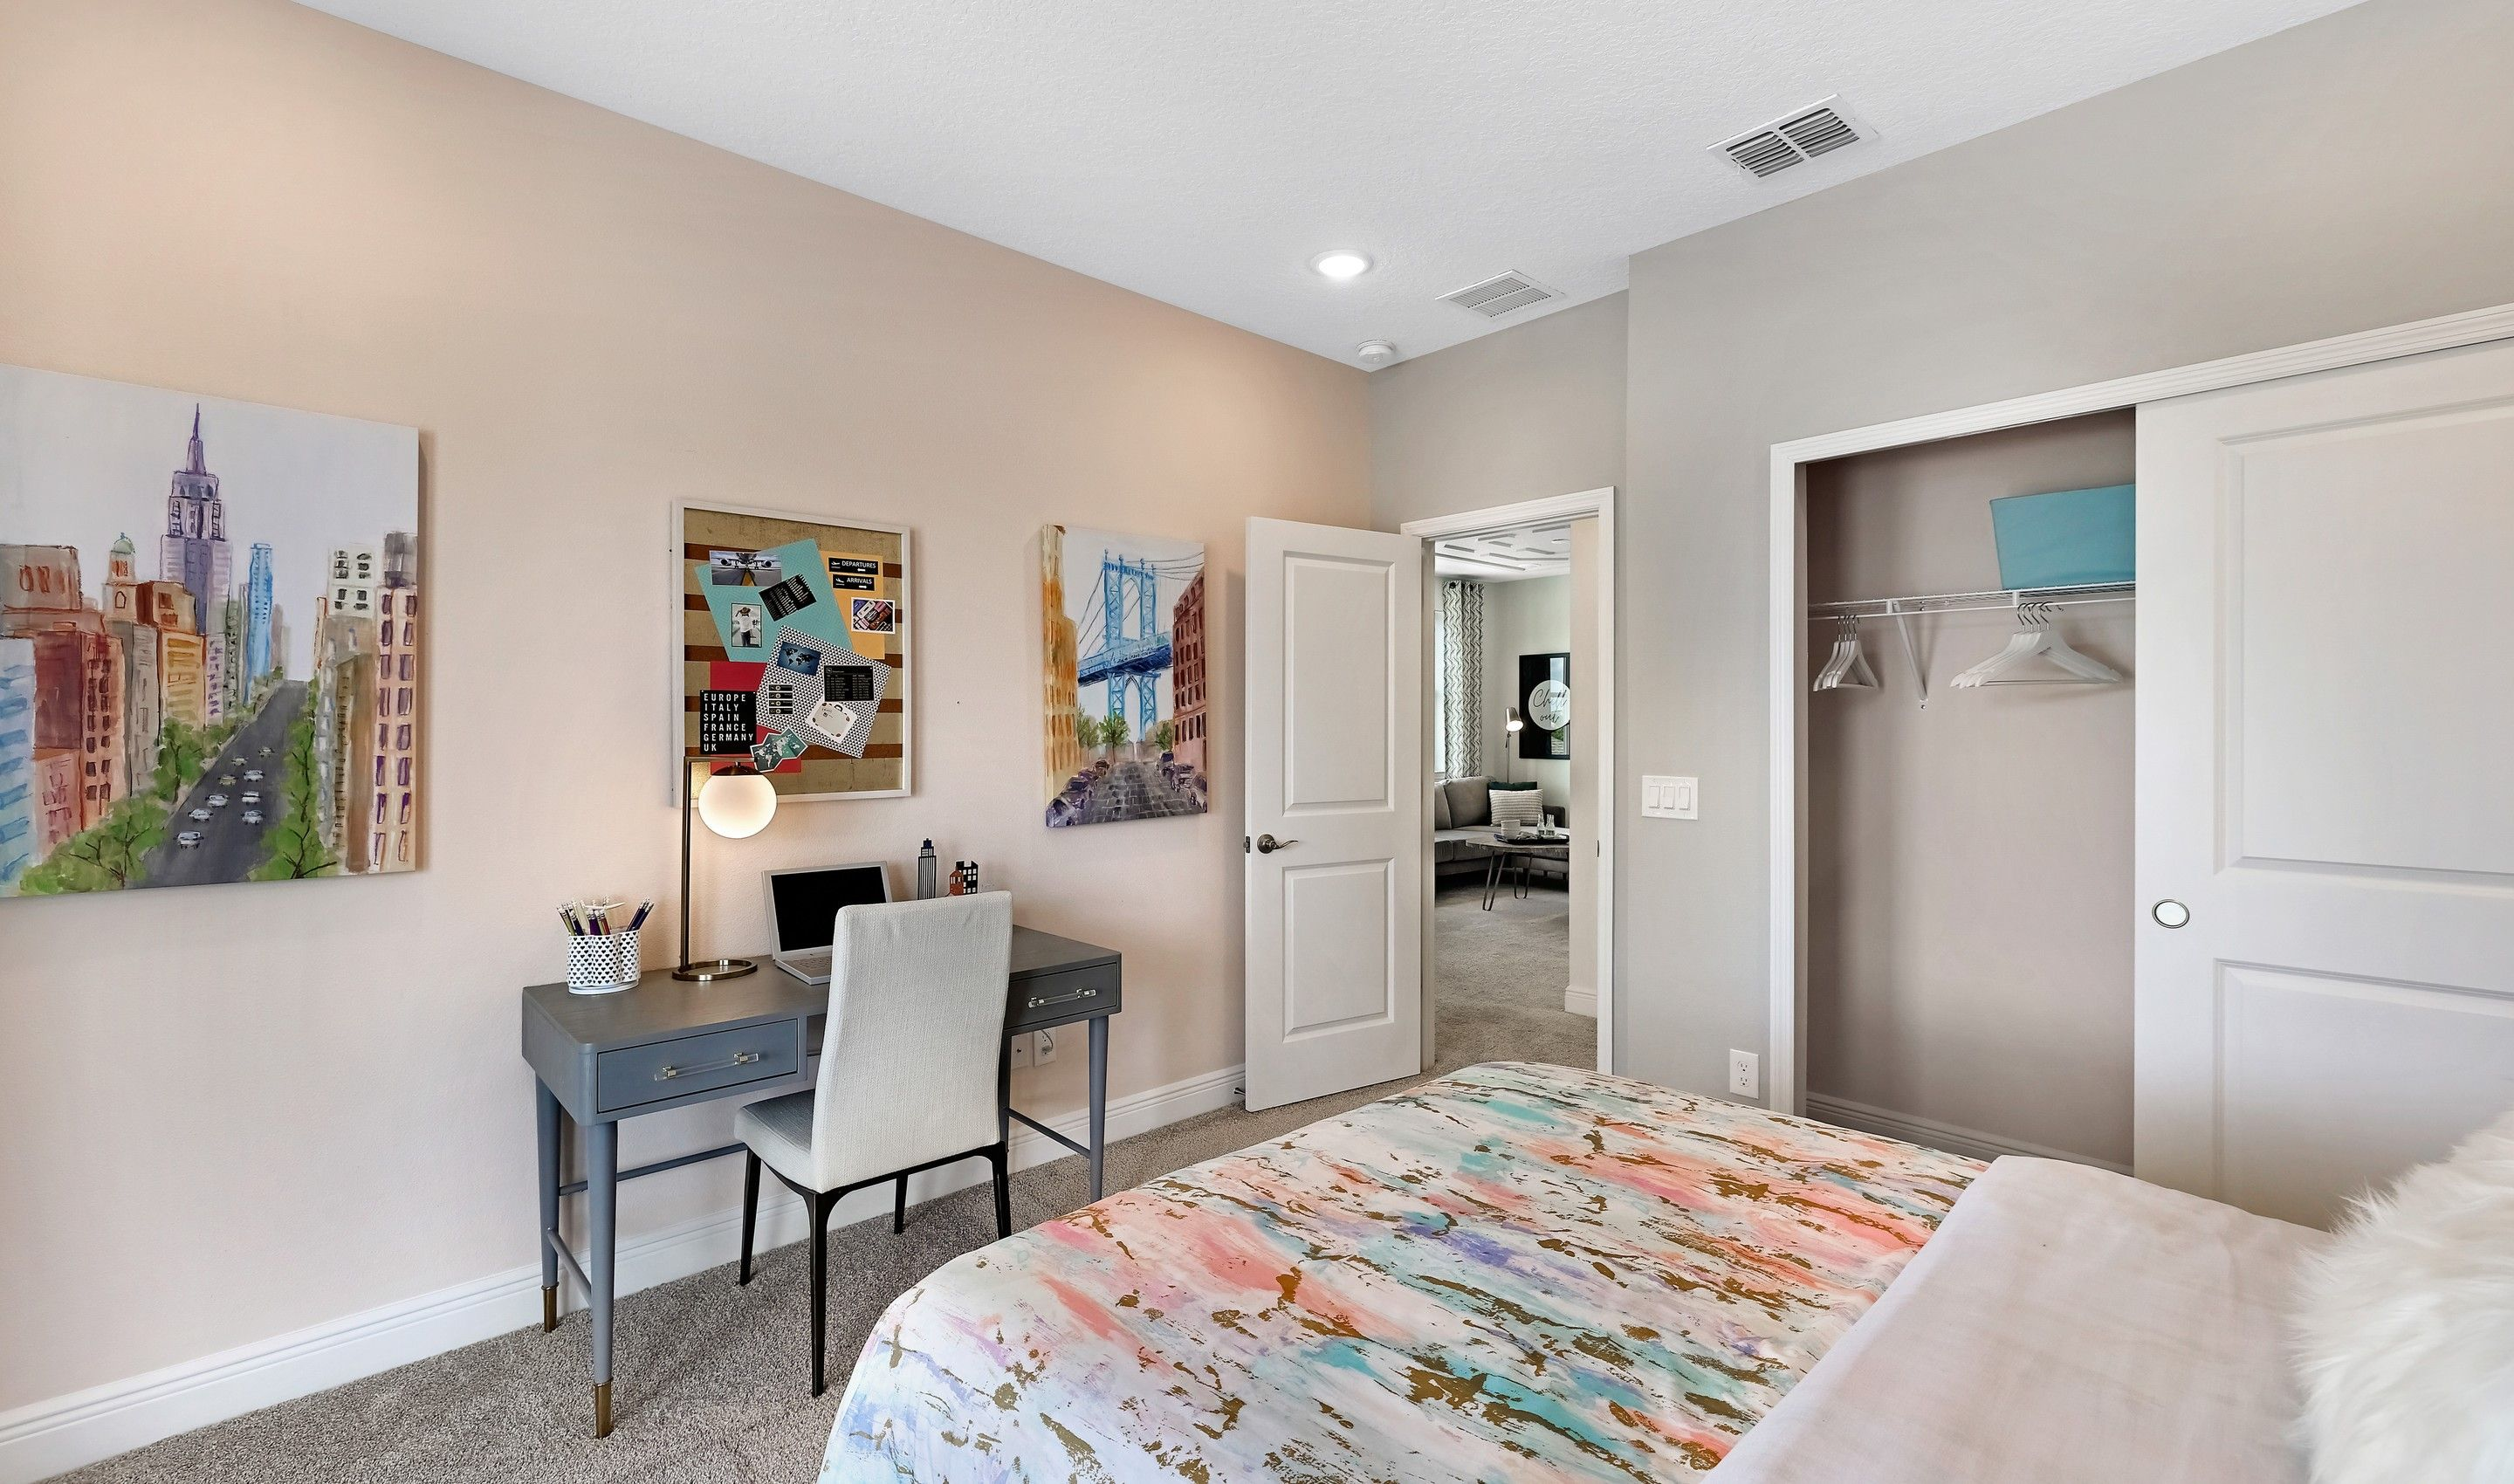 Bedroom featured in the Suncrest By K. Hovnanian® Homes in Daytona Beach, FL